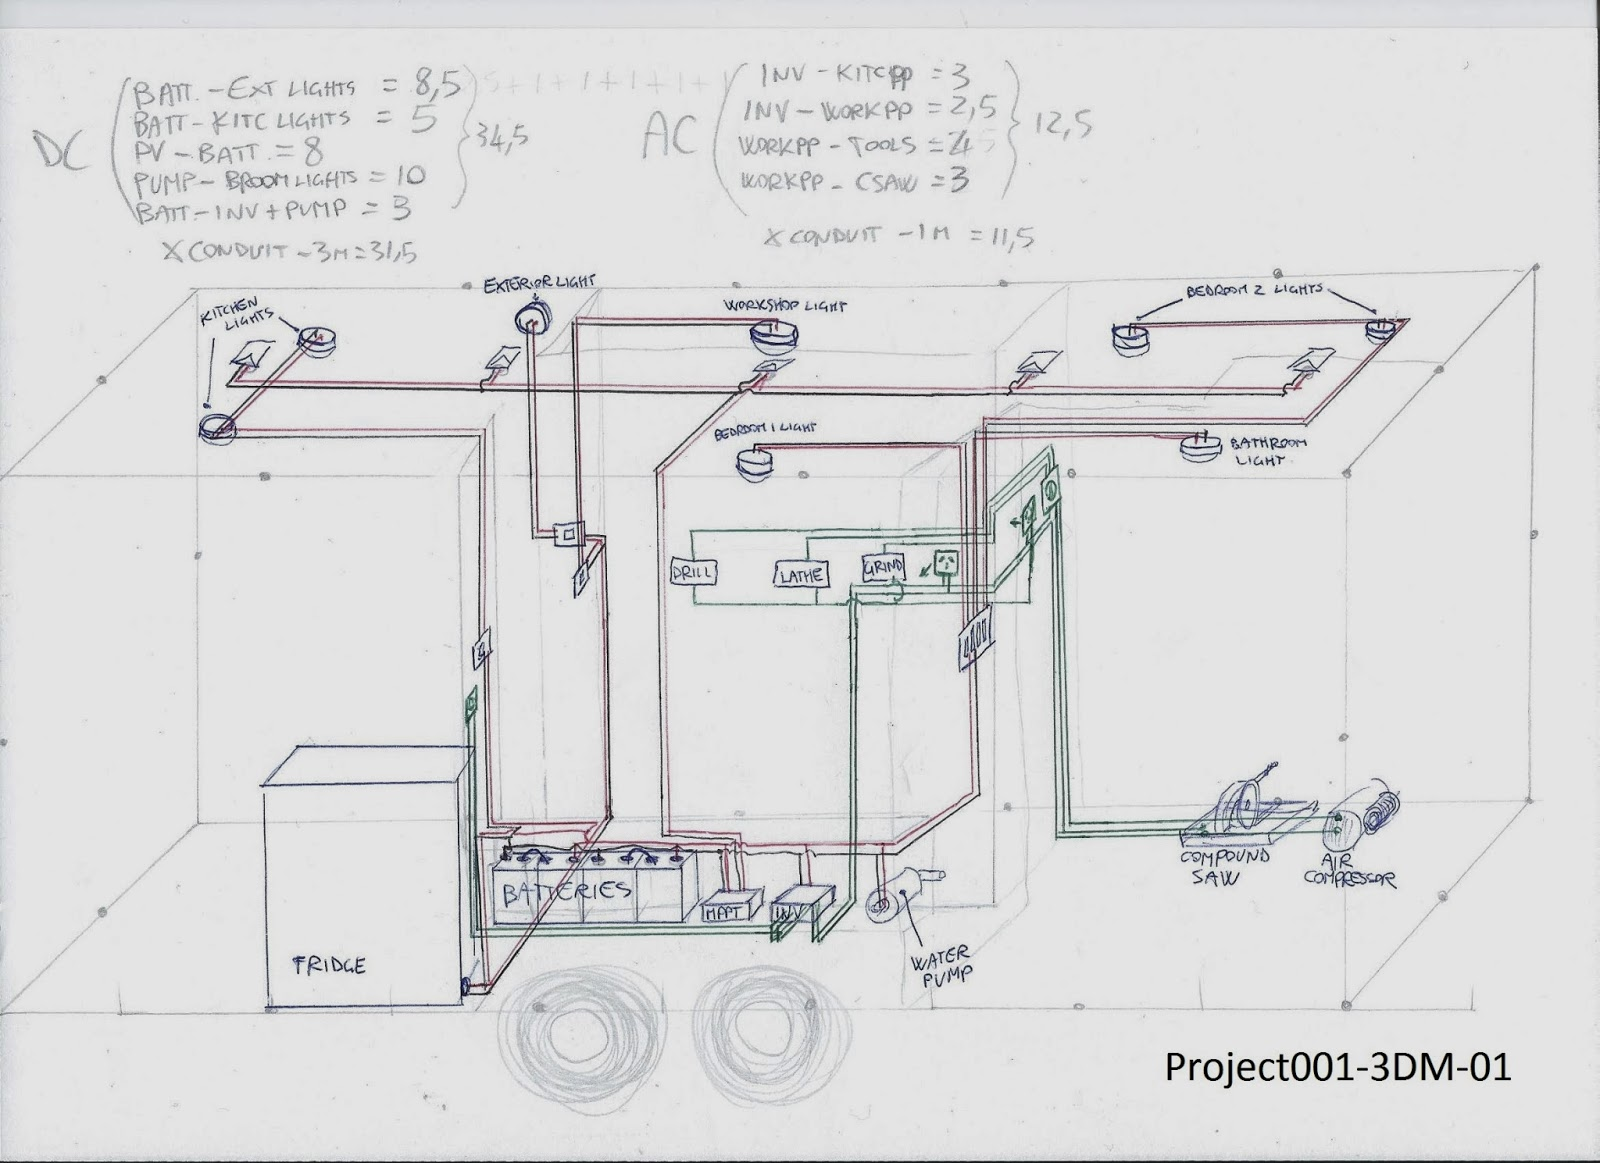 wiring diagram wiring diagram or schematic on ke controller wiring